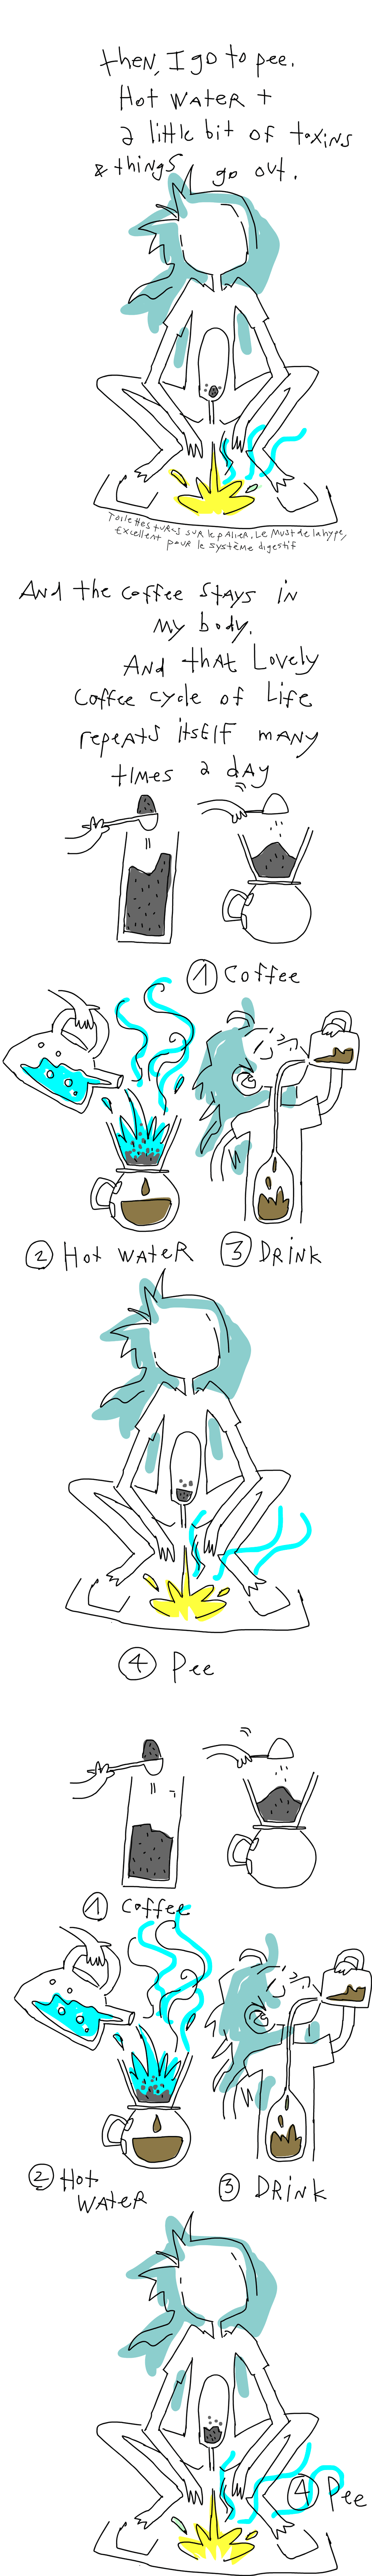 Hot water plus a little bit of toxin thingies get out my body. And the coffee stays. And that lovely cycle of coffee drinks repeats itself many times during the day.